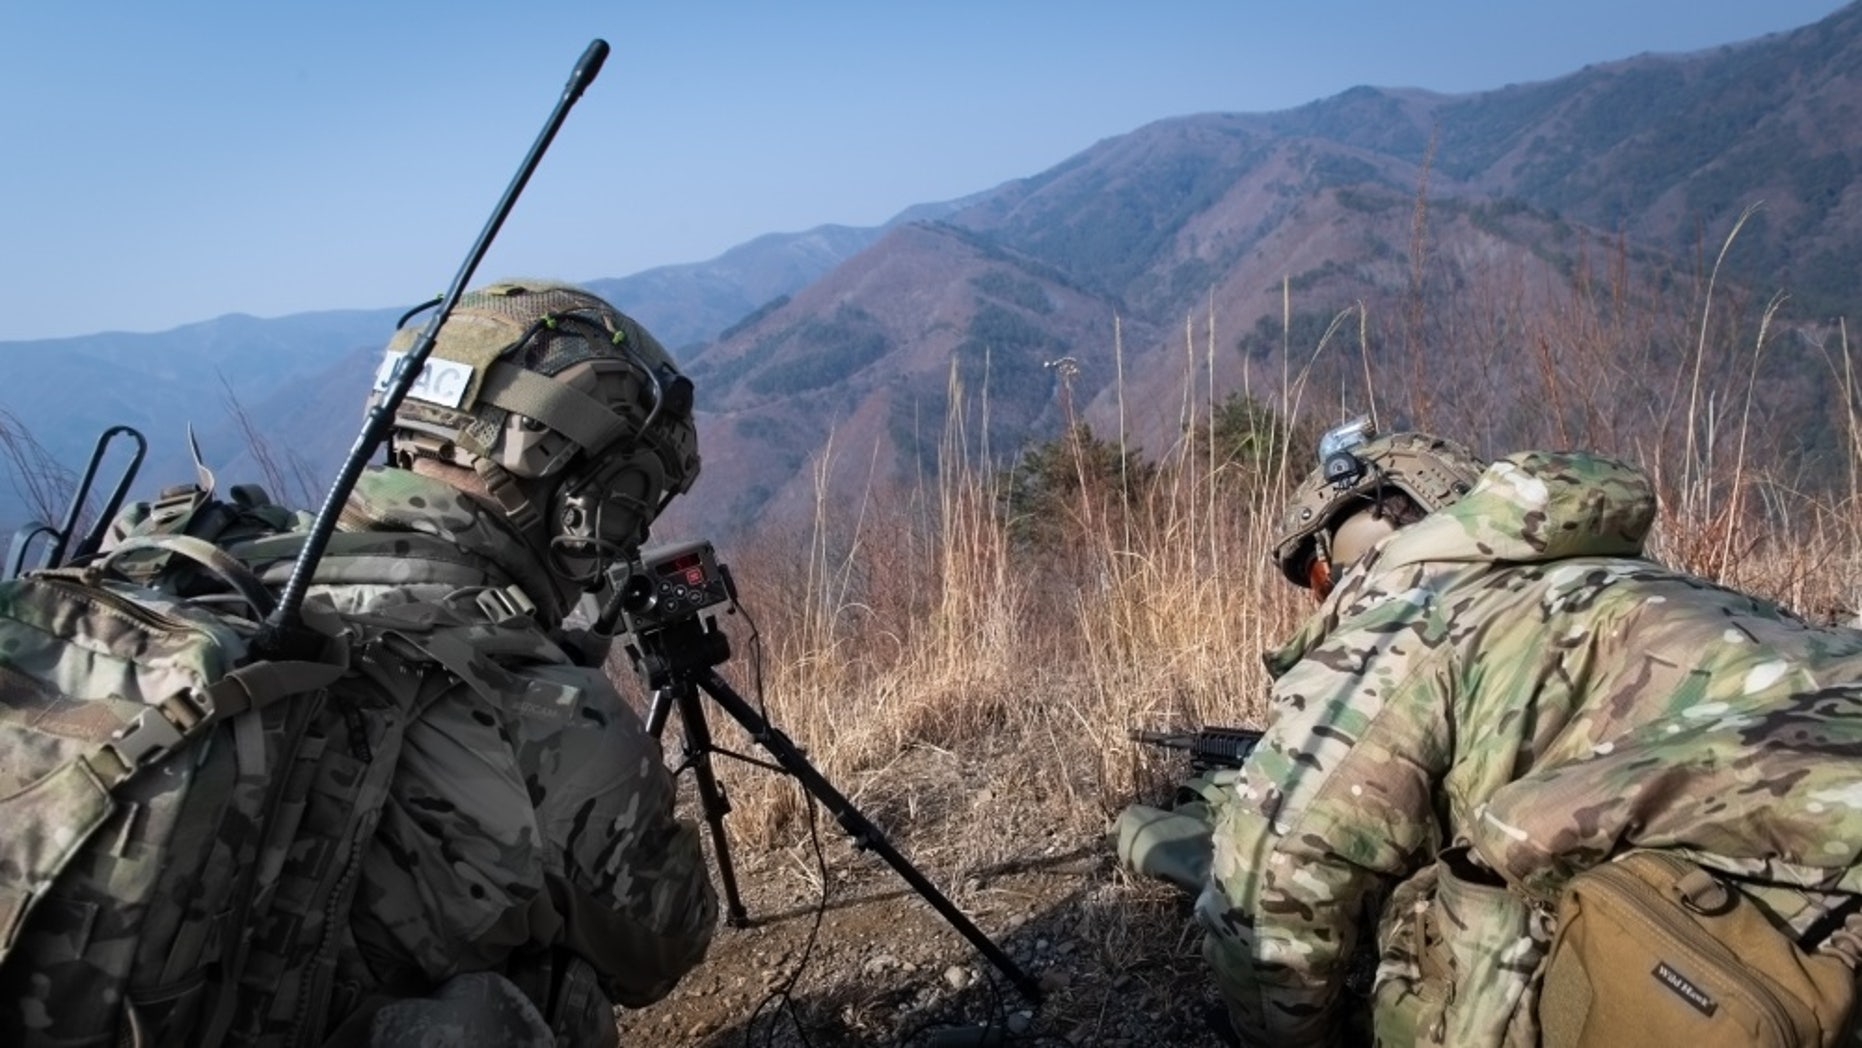 File photo - Two U.S. Air Force joint terminal attack controllers utilize a laser designator designed to designate a target during training at Pilsung Range in Gangwan Province, Republic of Korea, Feb. 14, 2019. (U.S. Air Force photo by Staff Sgt. Benjamin Raughton)